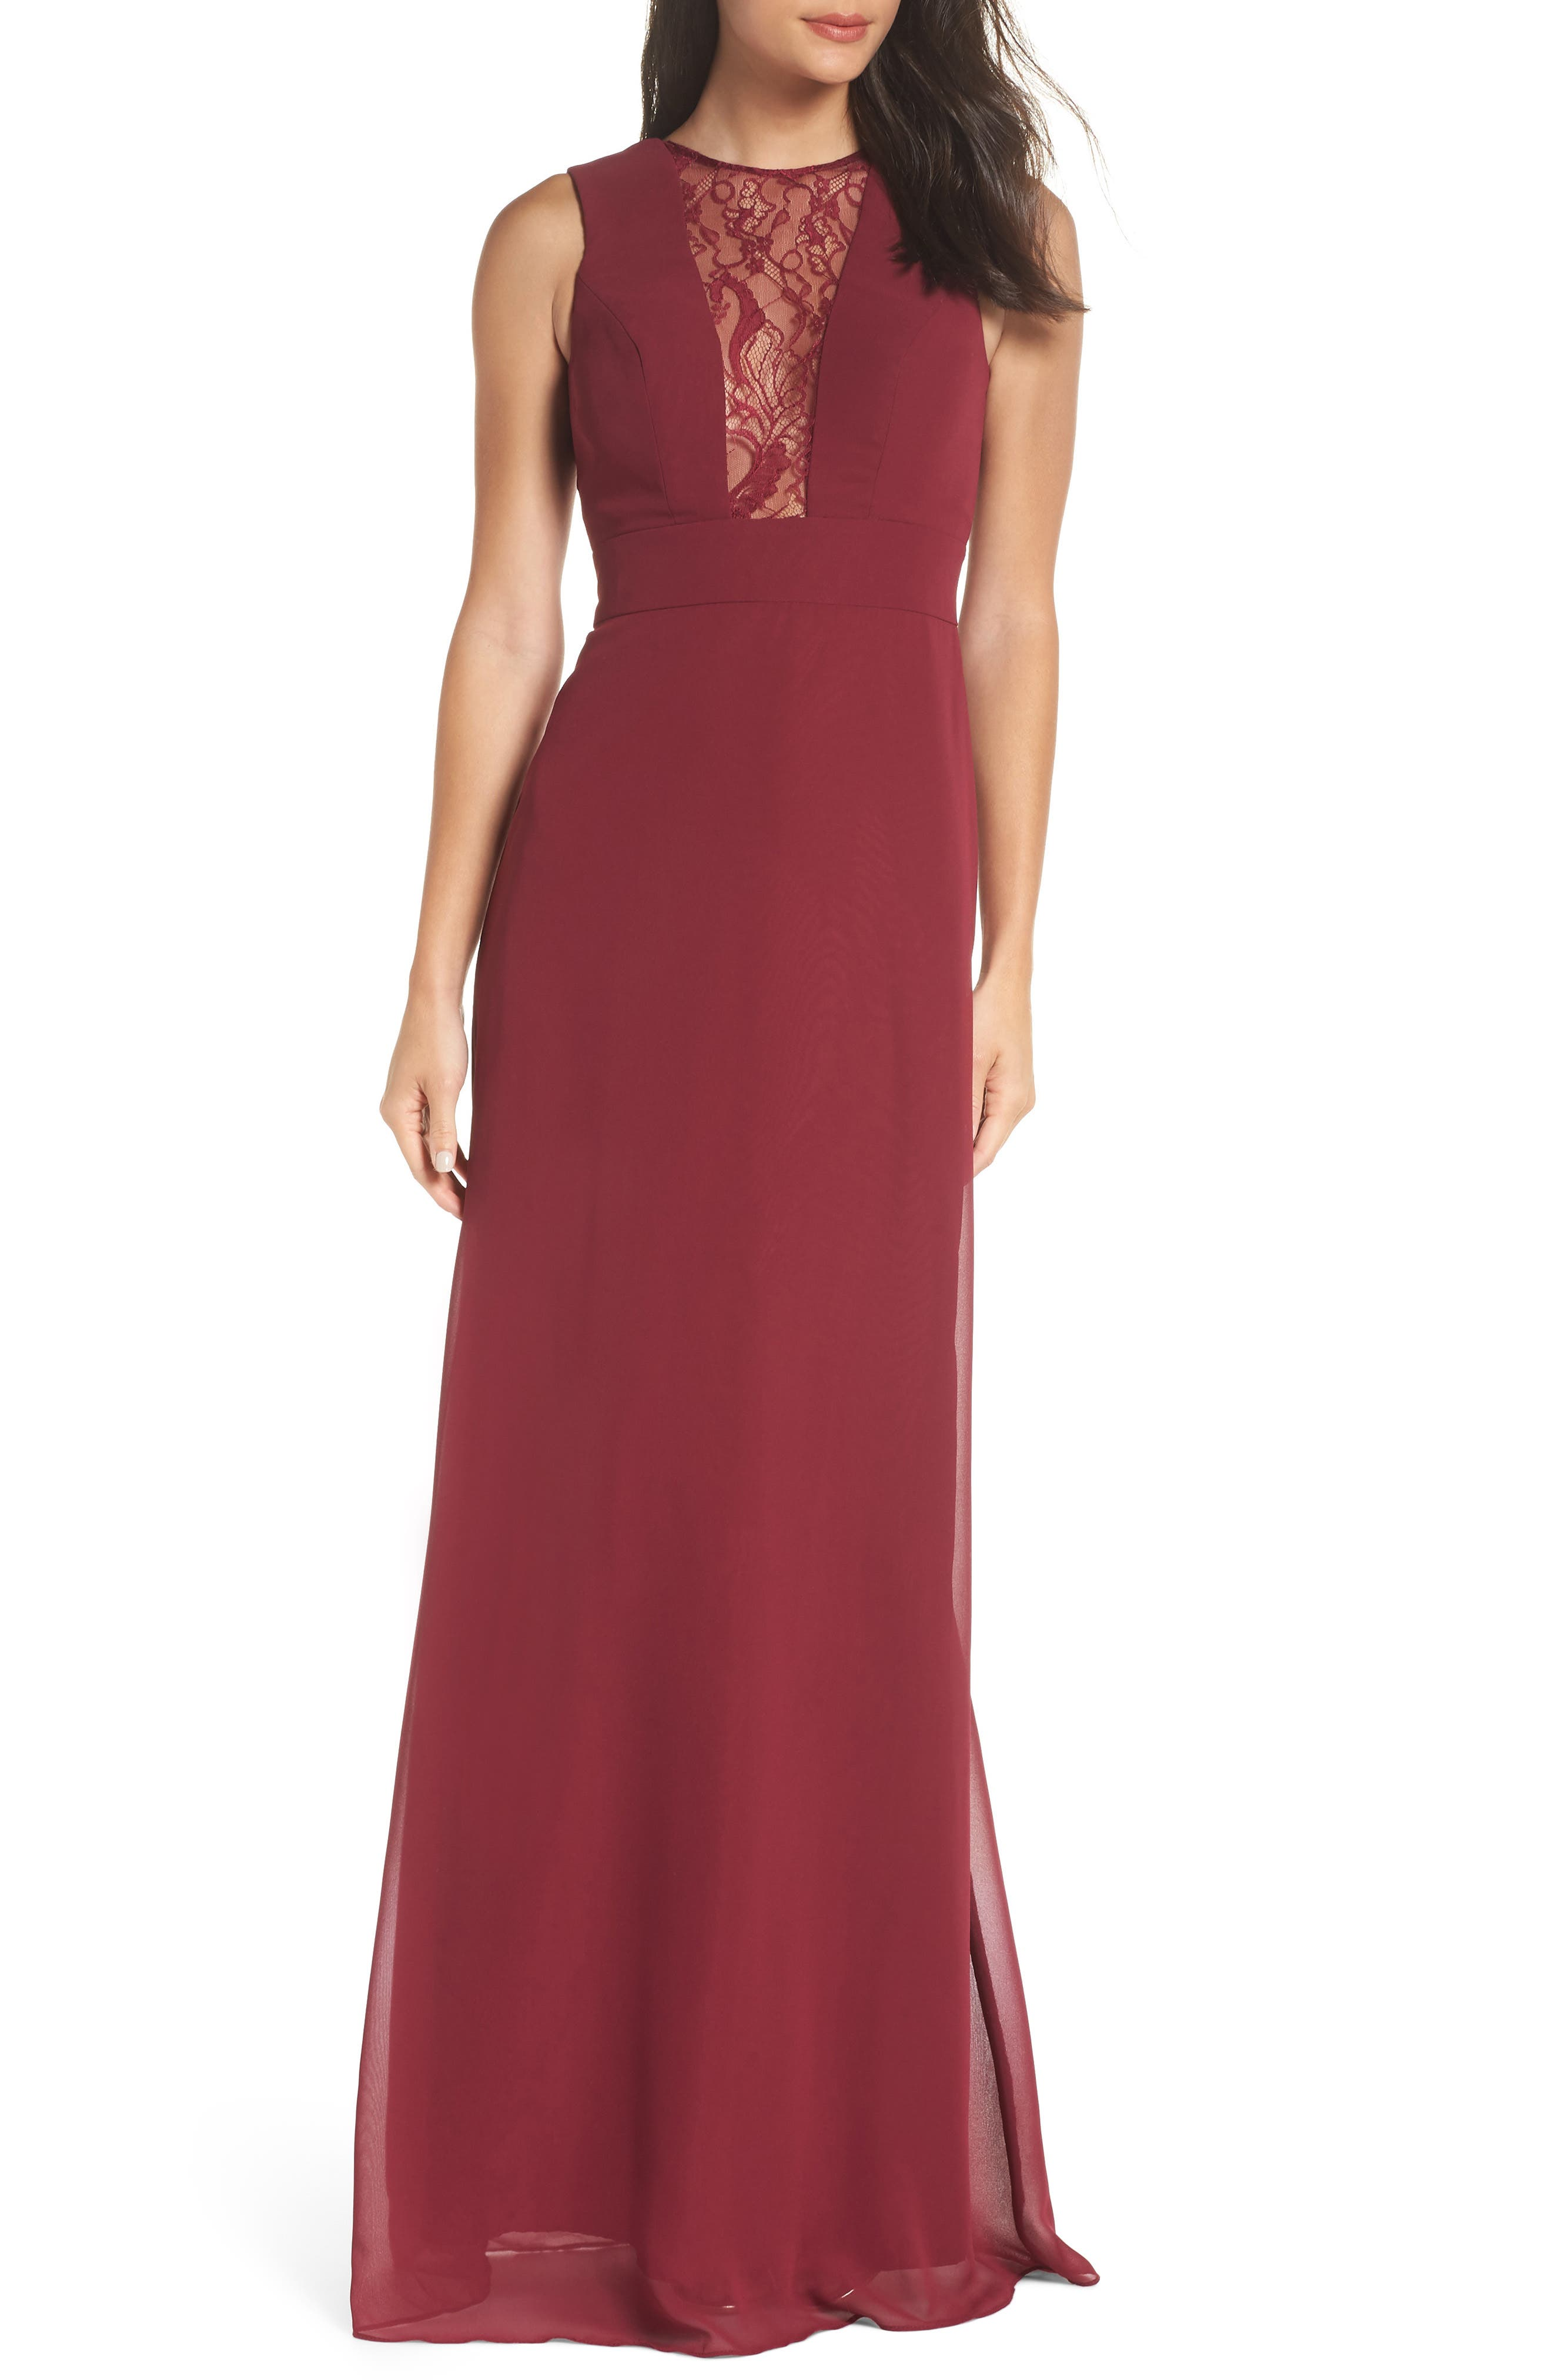 d90a1e4ced Hayley Paige Occasions Bridesmaid Dresses